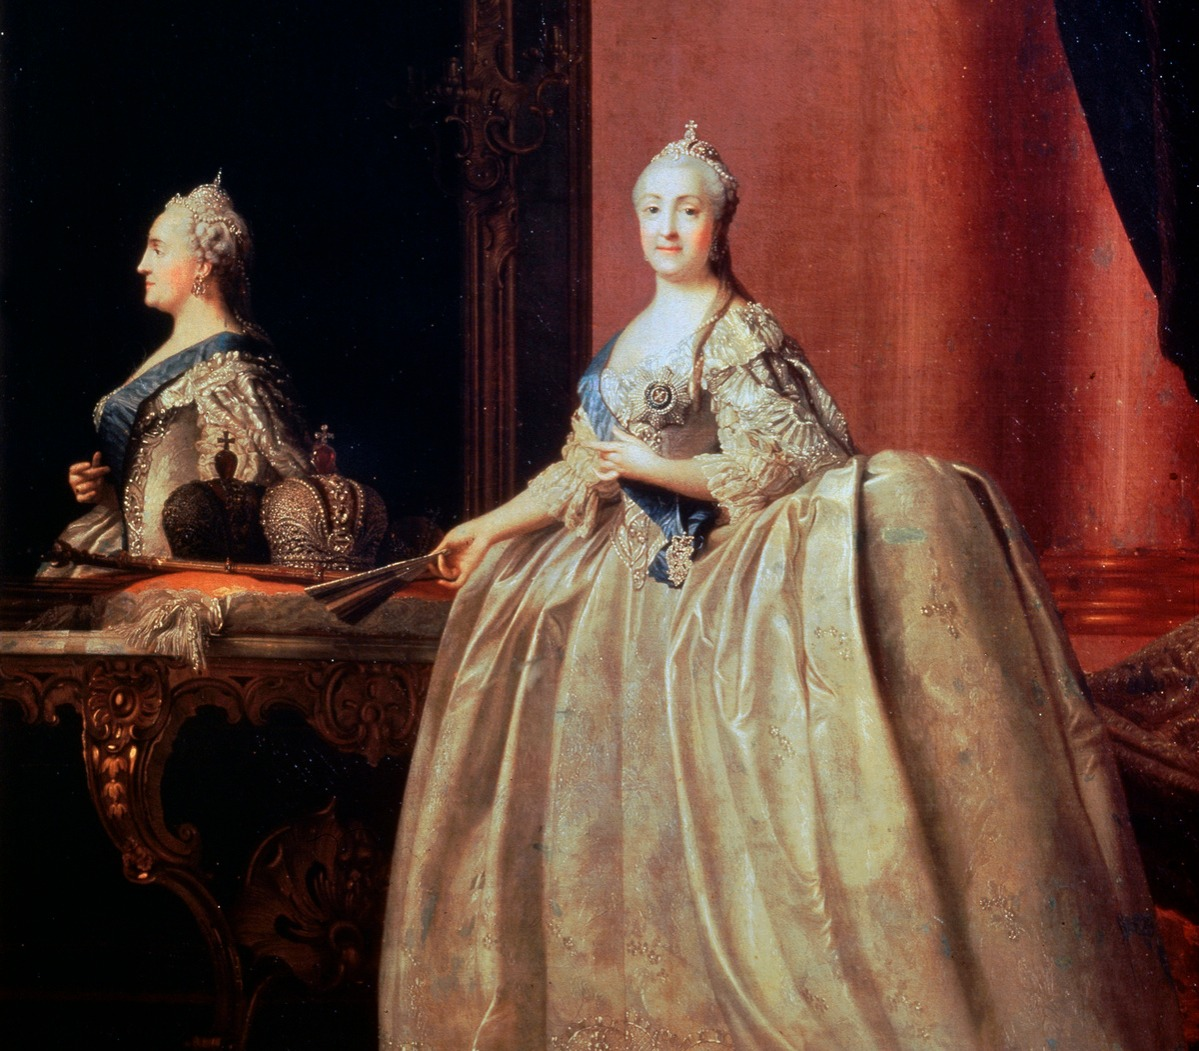 'Empress Catherine II before the Mirror', 1779. Catherine the Great (1729-1796) came to the throne in 1762. A German princess, she was chosen at the age of 14 to be the wife of Peter III of Russia.